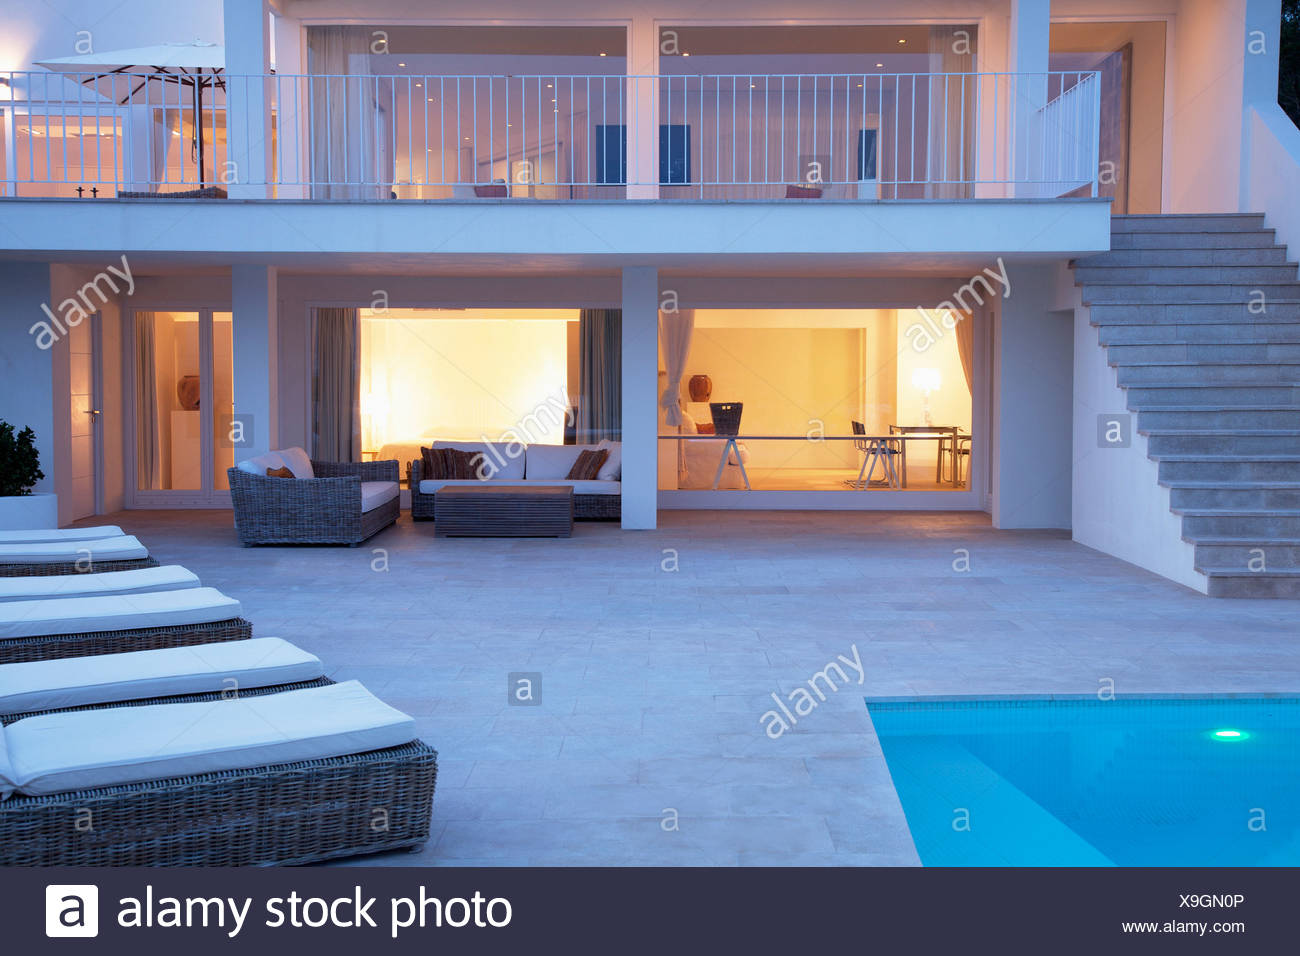 Pool and patio area of modern house - Stock Image